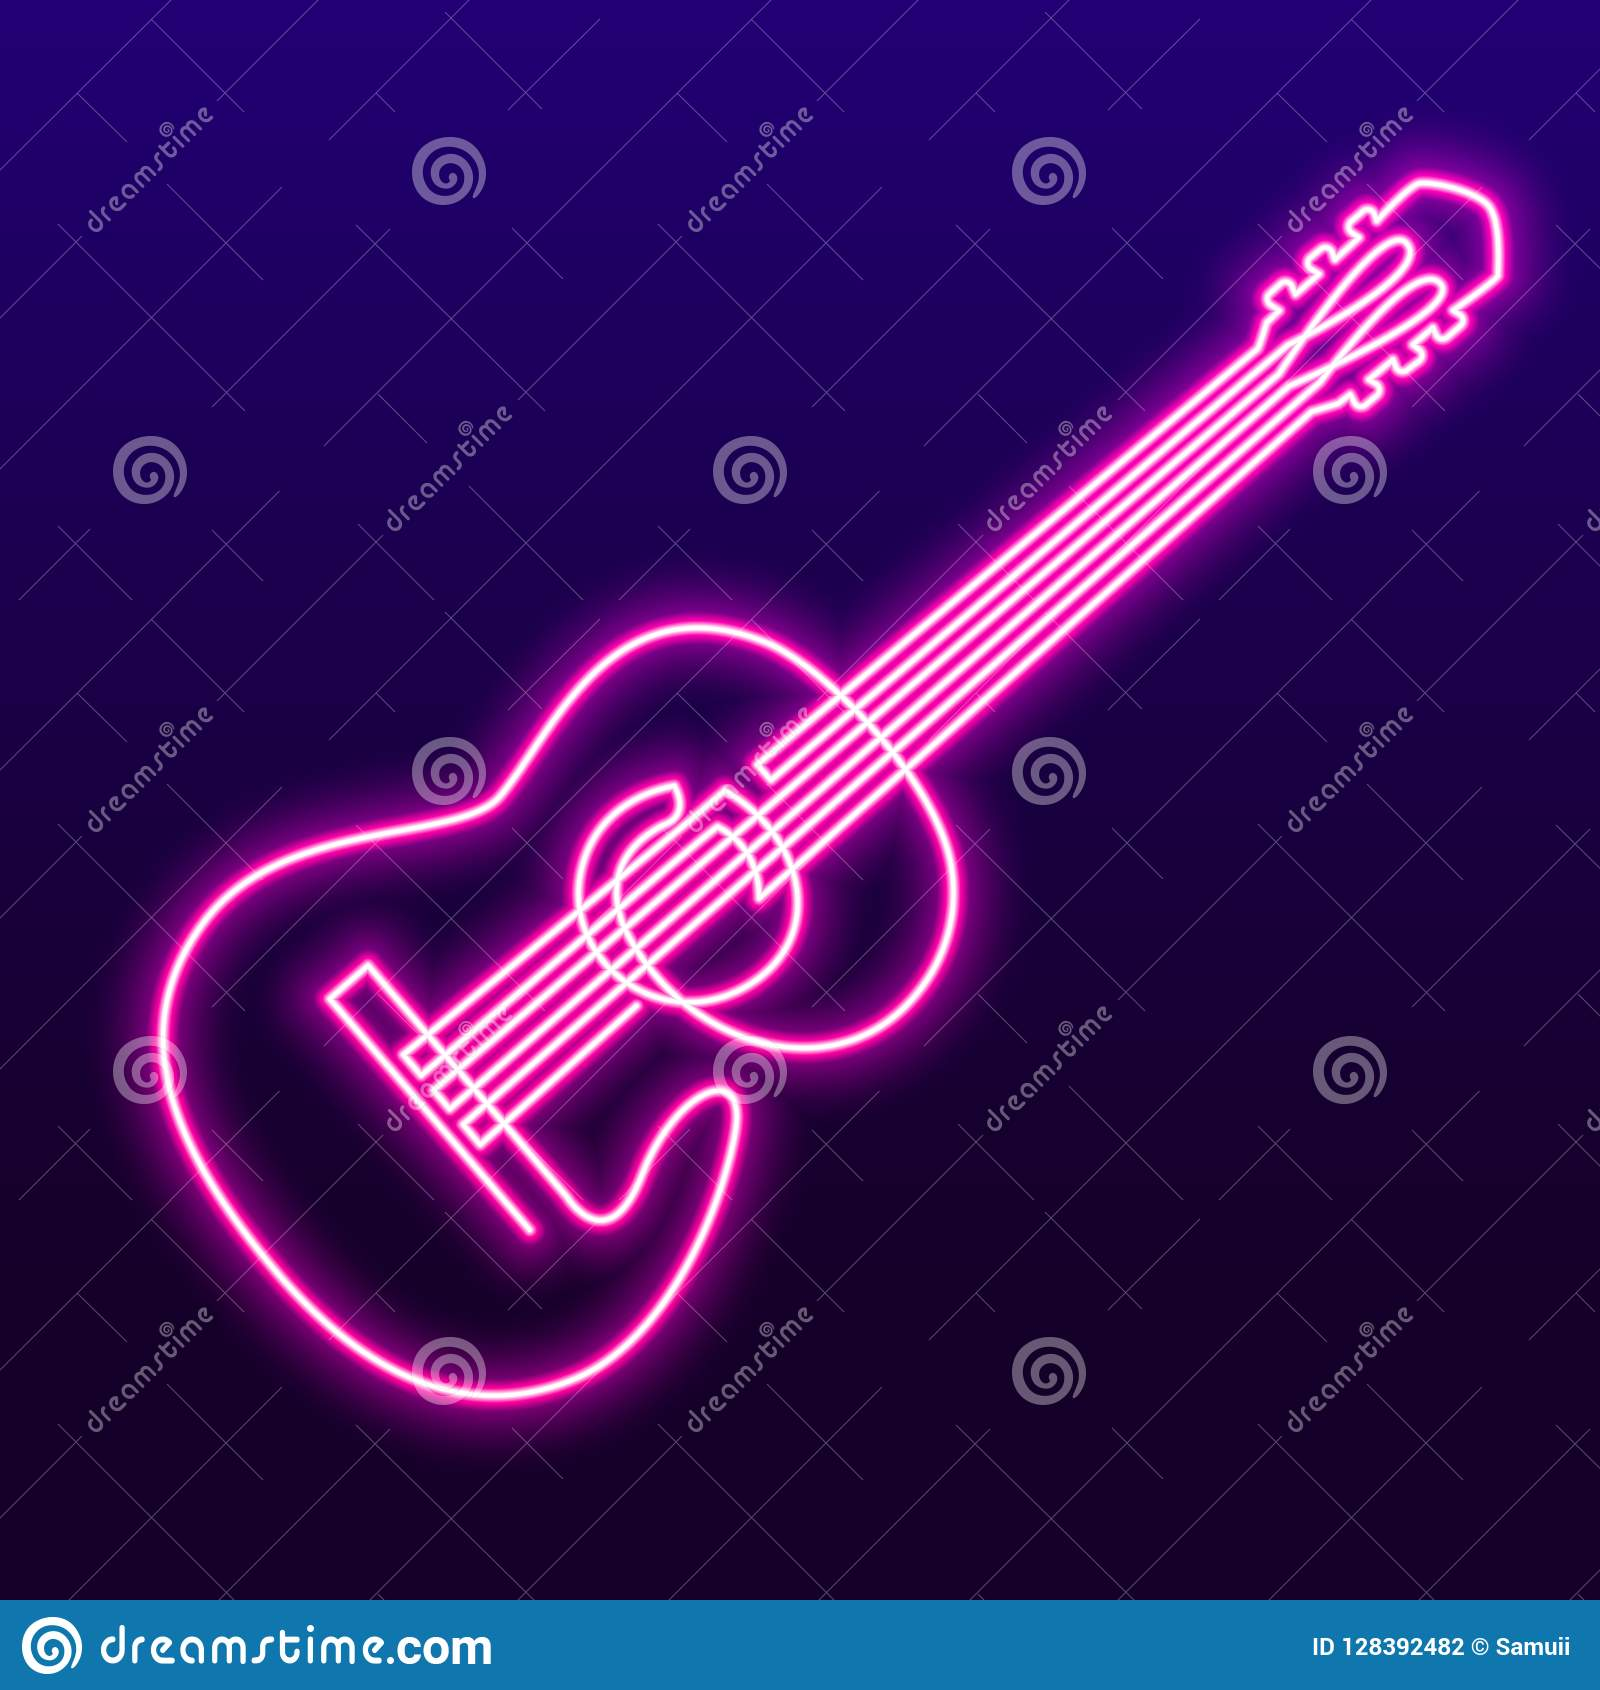 Neon Pink Light Lamp Continuous Line Drawing Of Acoustic Guitar